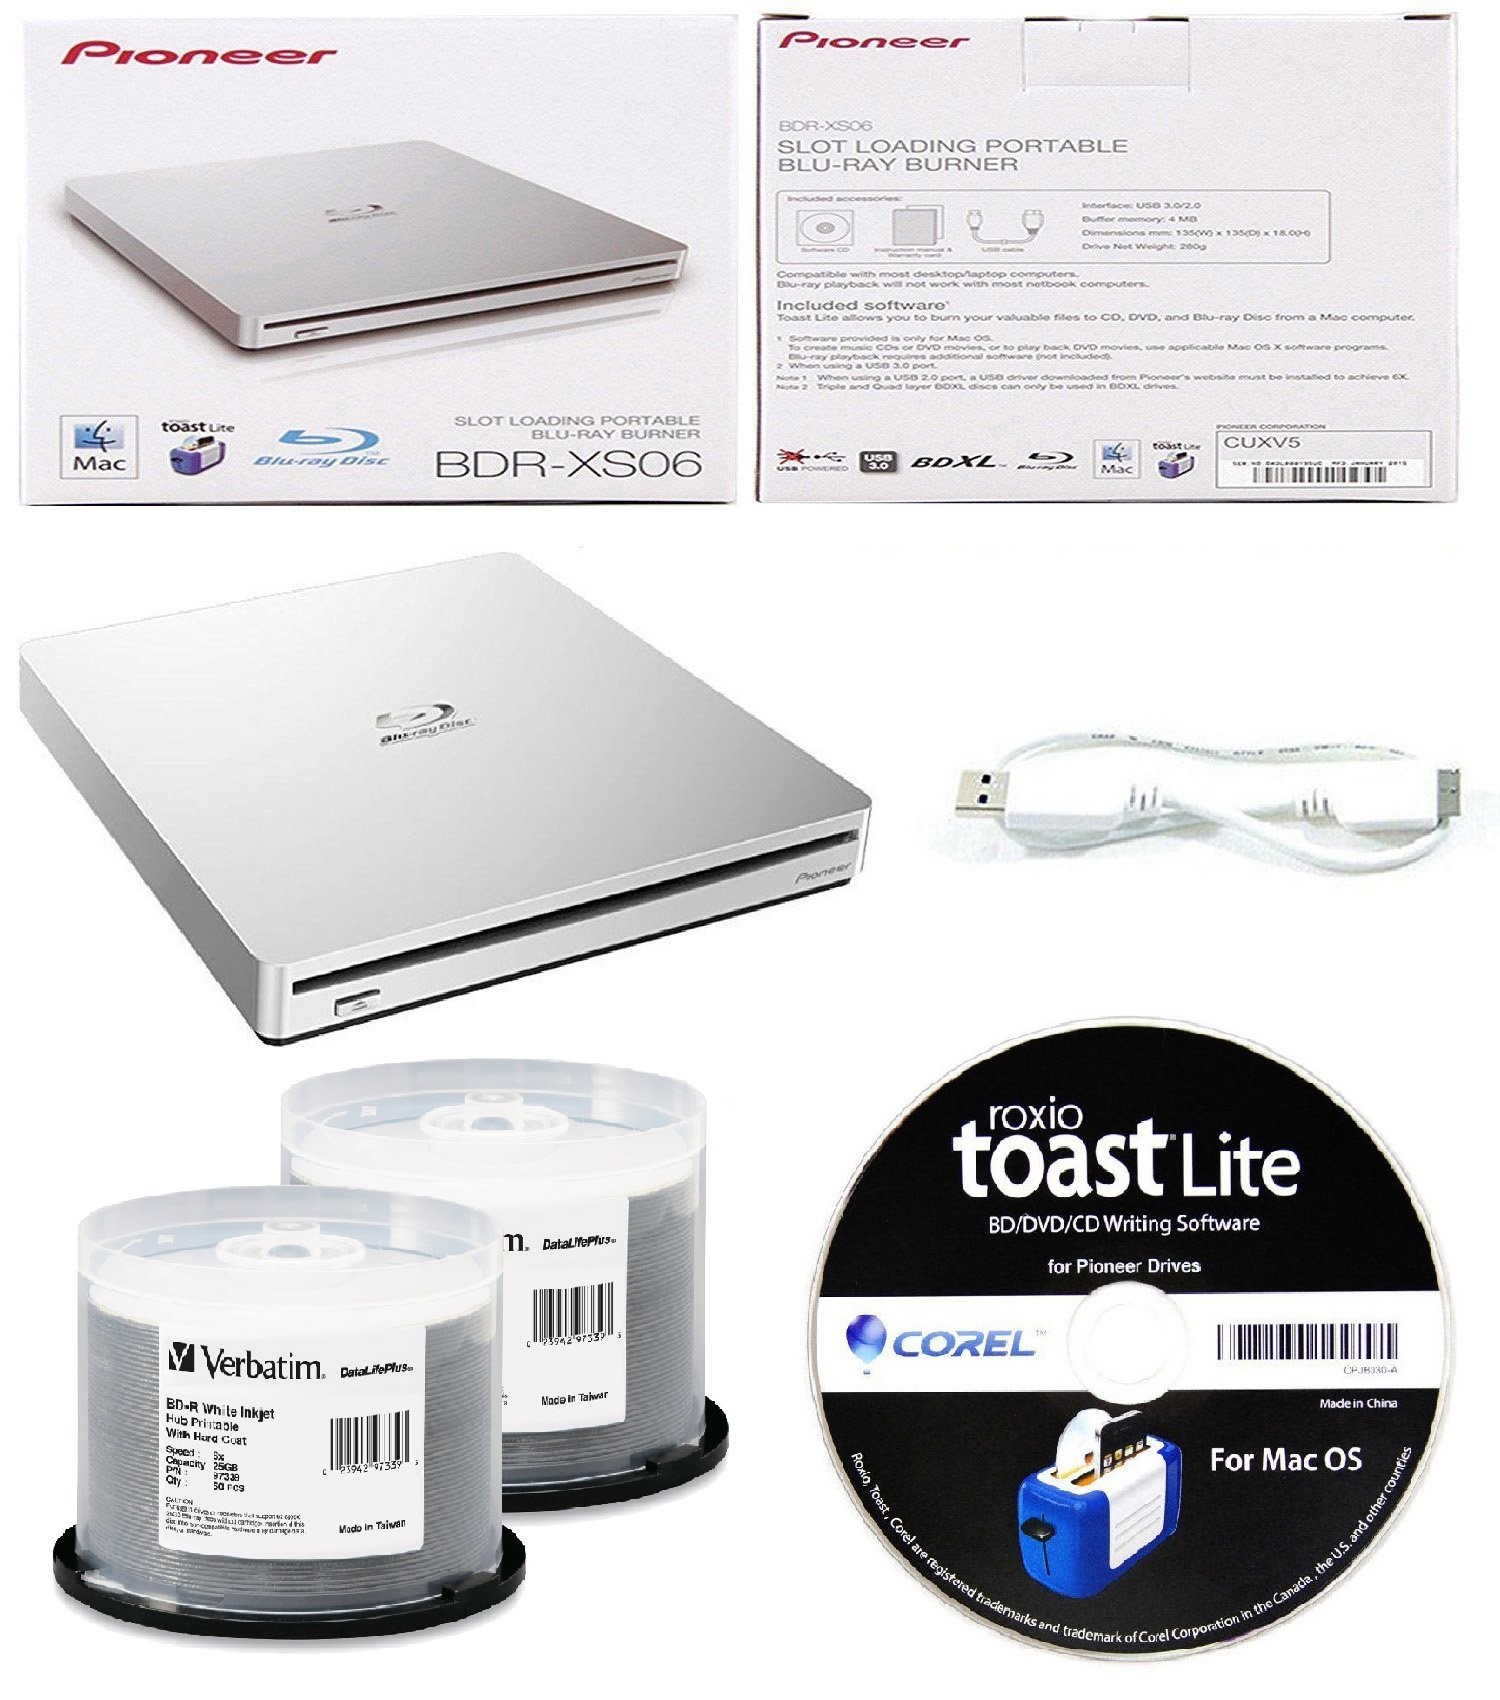 Pioneer 6x BDR-XS06 Slim Slot Portable External Blu-ray BDXL Burner, Roxio Toast Lite Software and USB Cable Bundle with 100pk BD-R Verbatim 25GB 6X DataLifePlus White Inkjet, Hub Printable